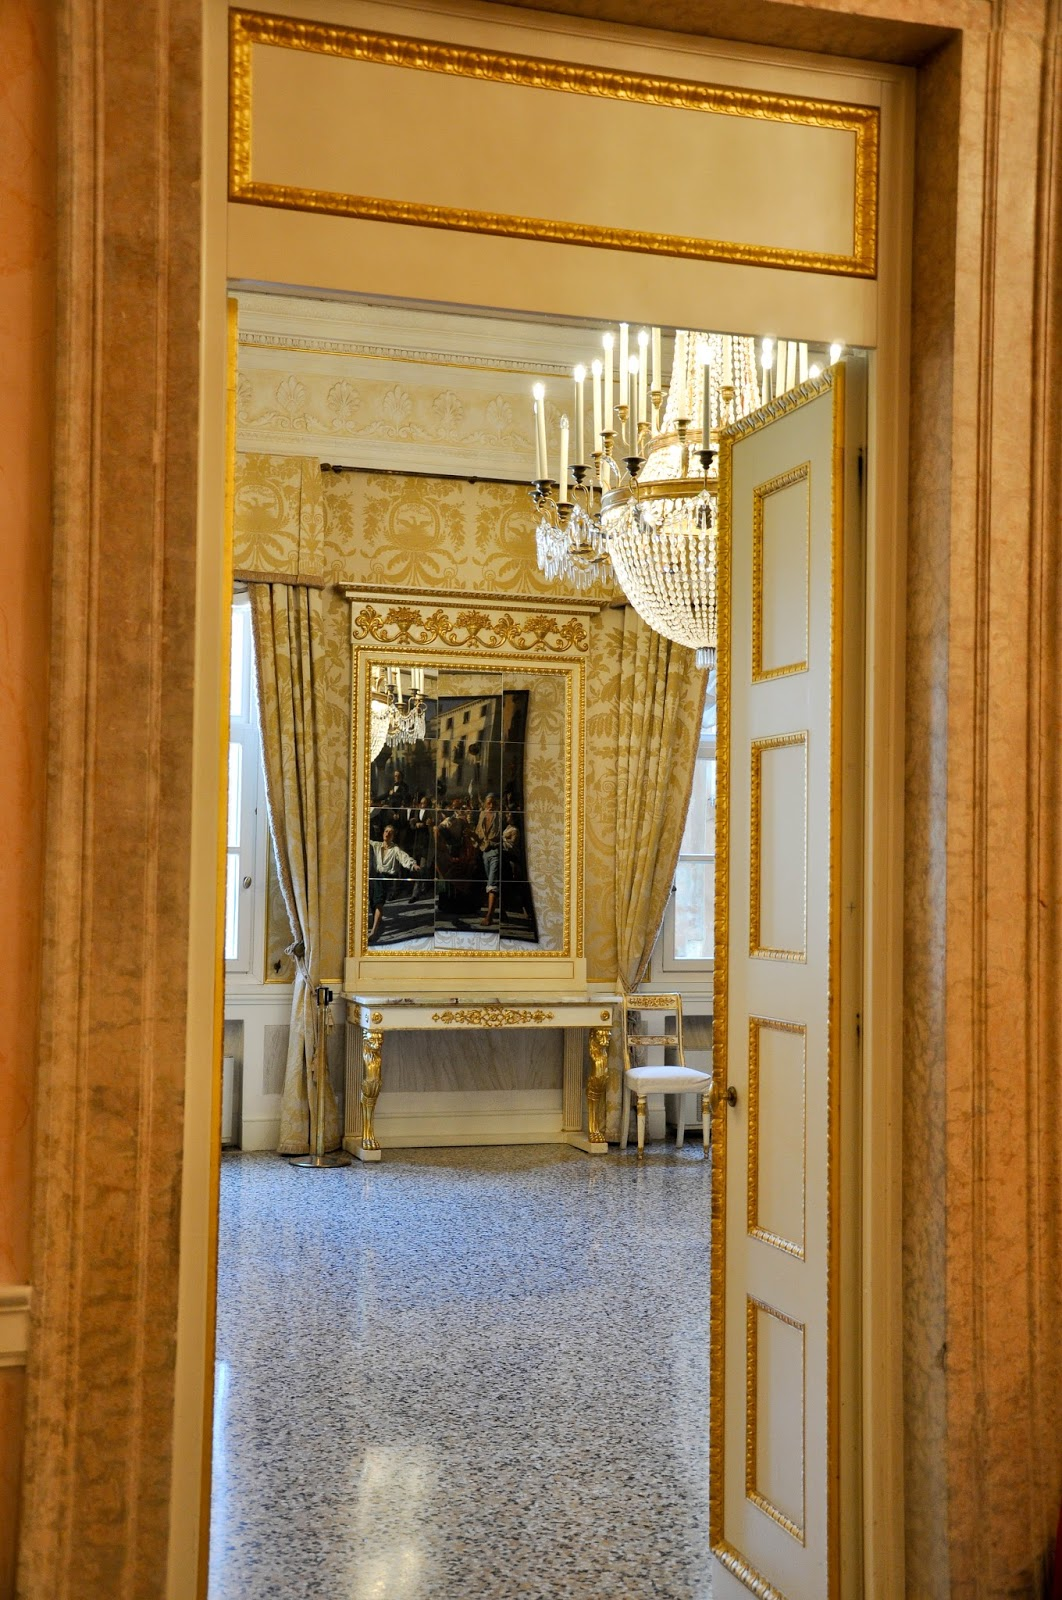 Into the room, La Fenice, Venice, Italy